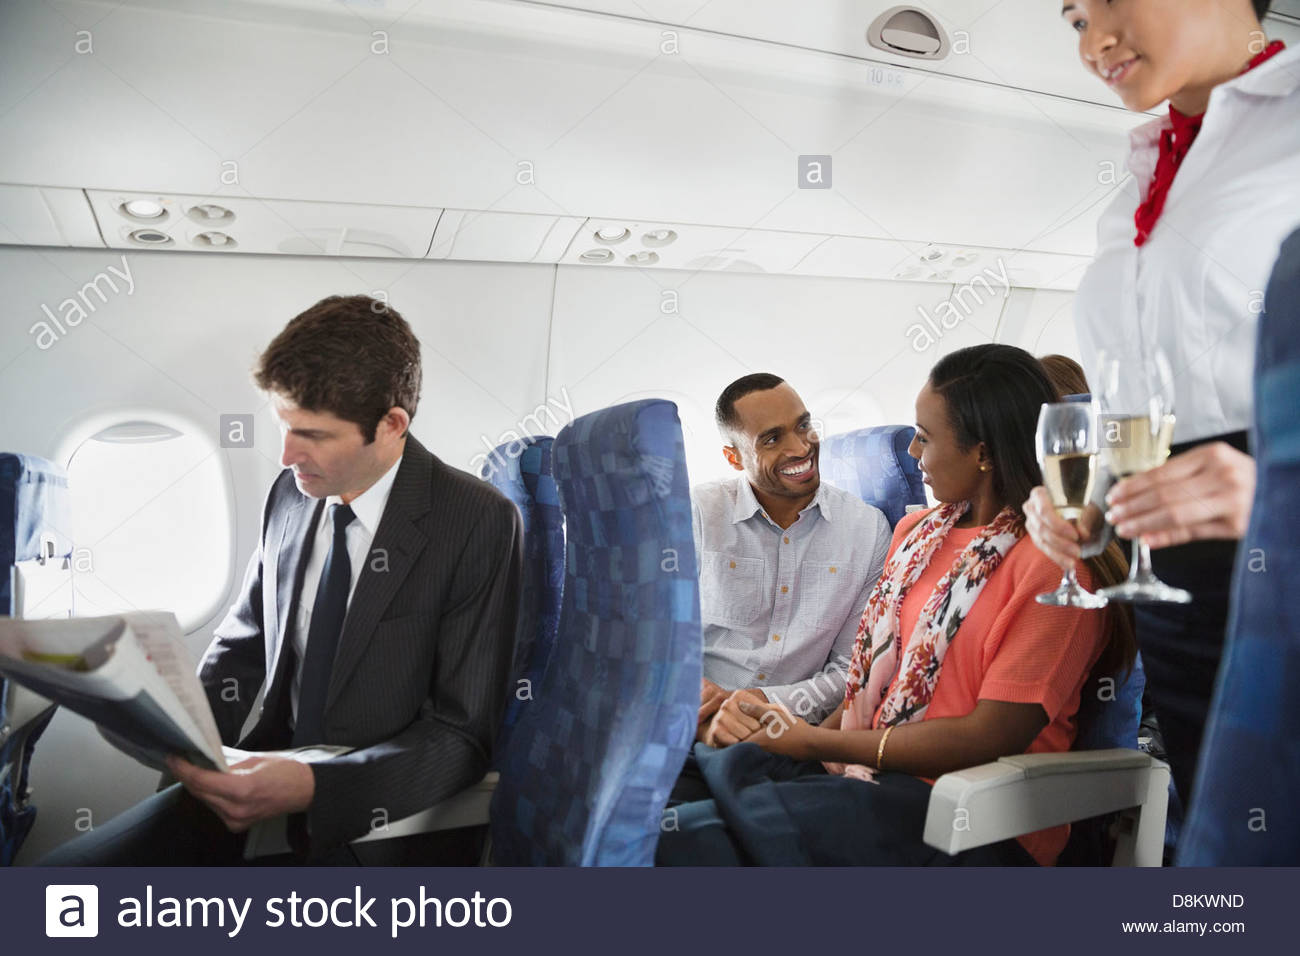 Flight attendant serving drinks to passengers - Stock Image